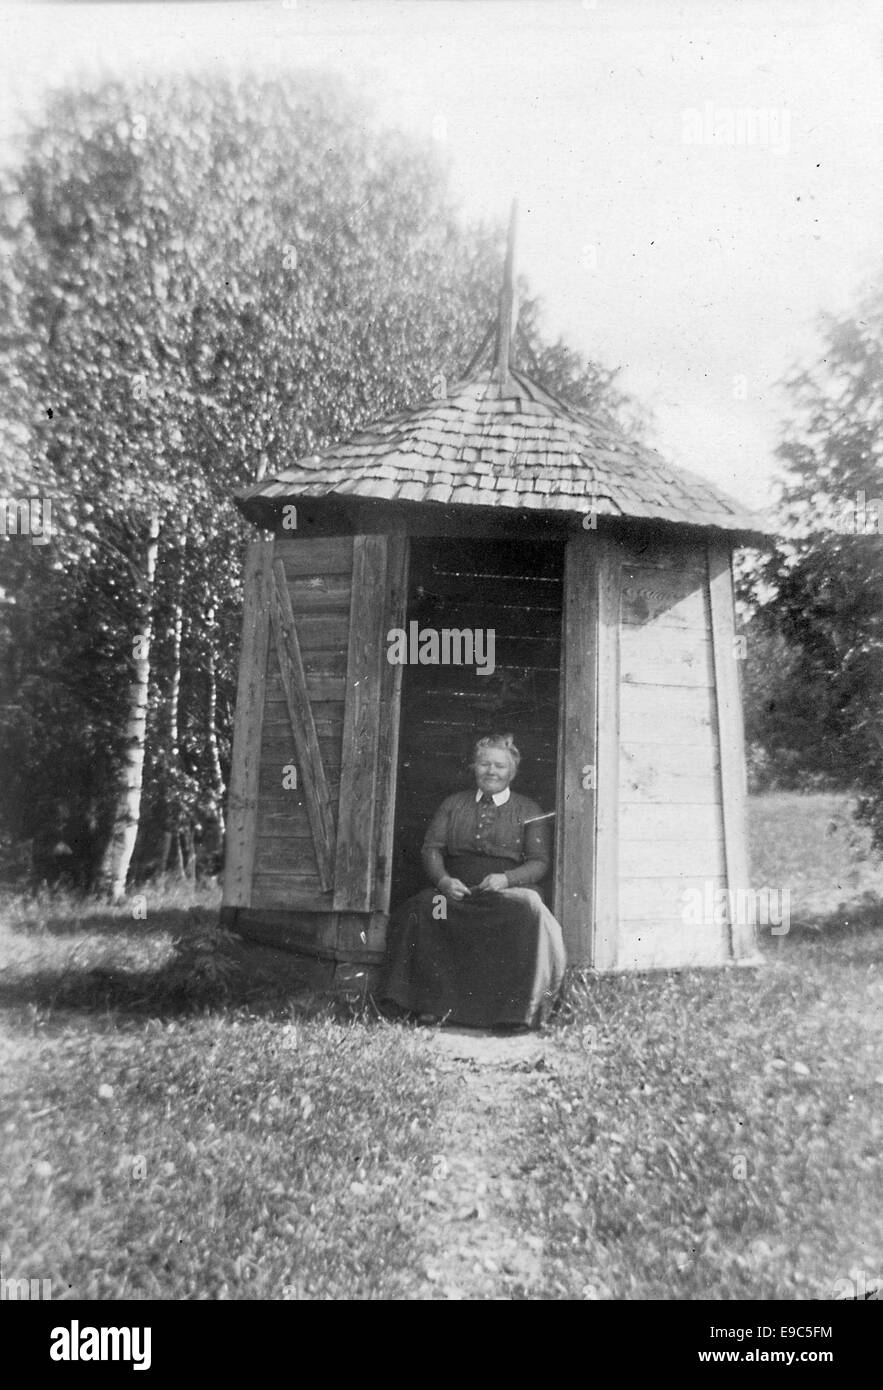 Edith Södergran's mother Helena sitting at the well - Stock Image